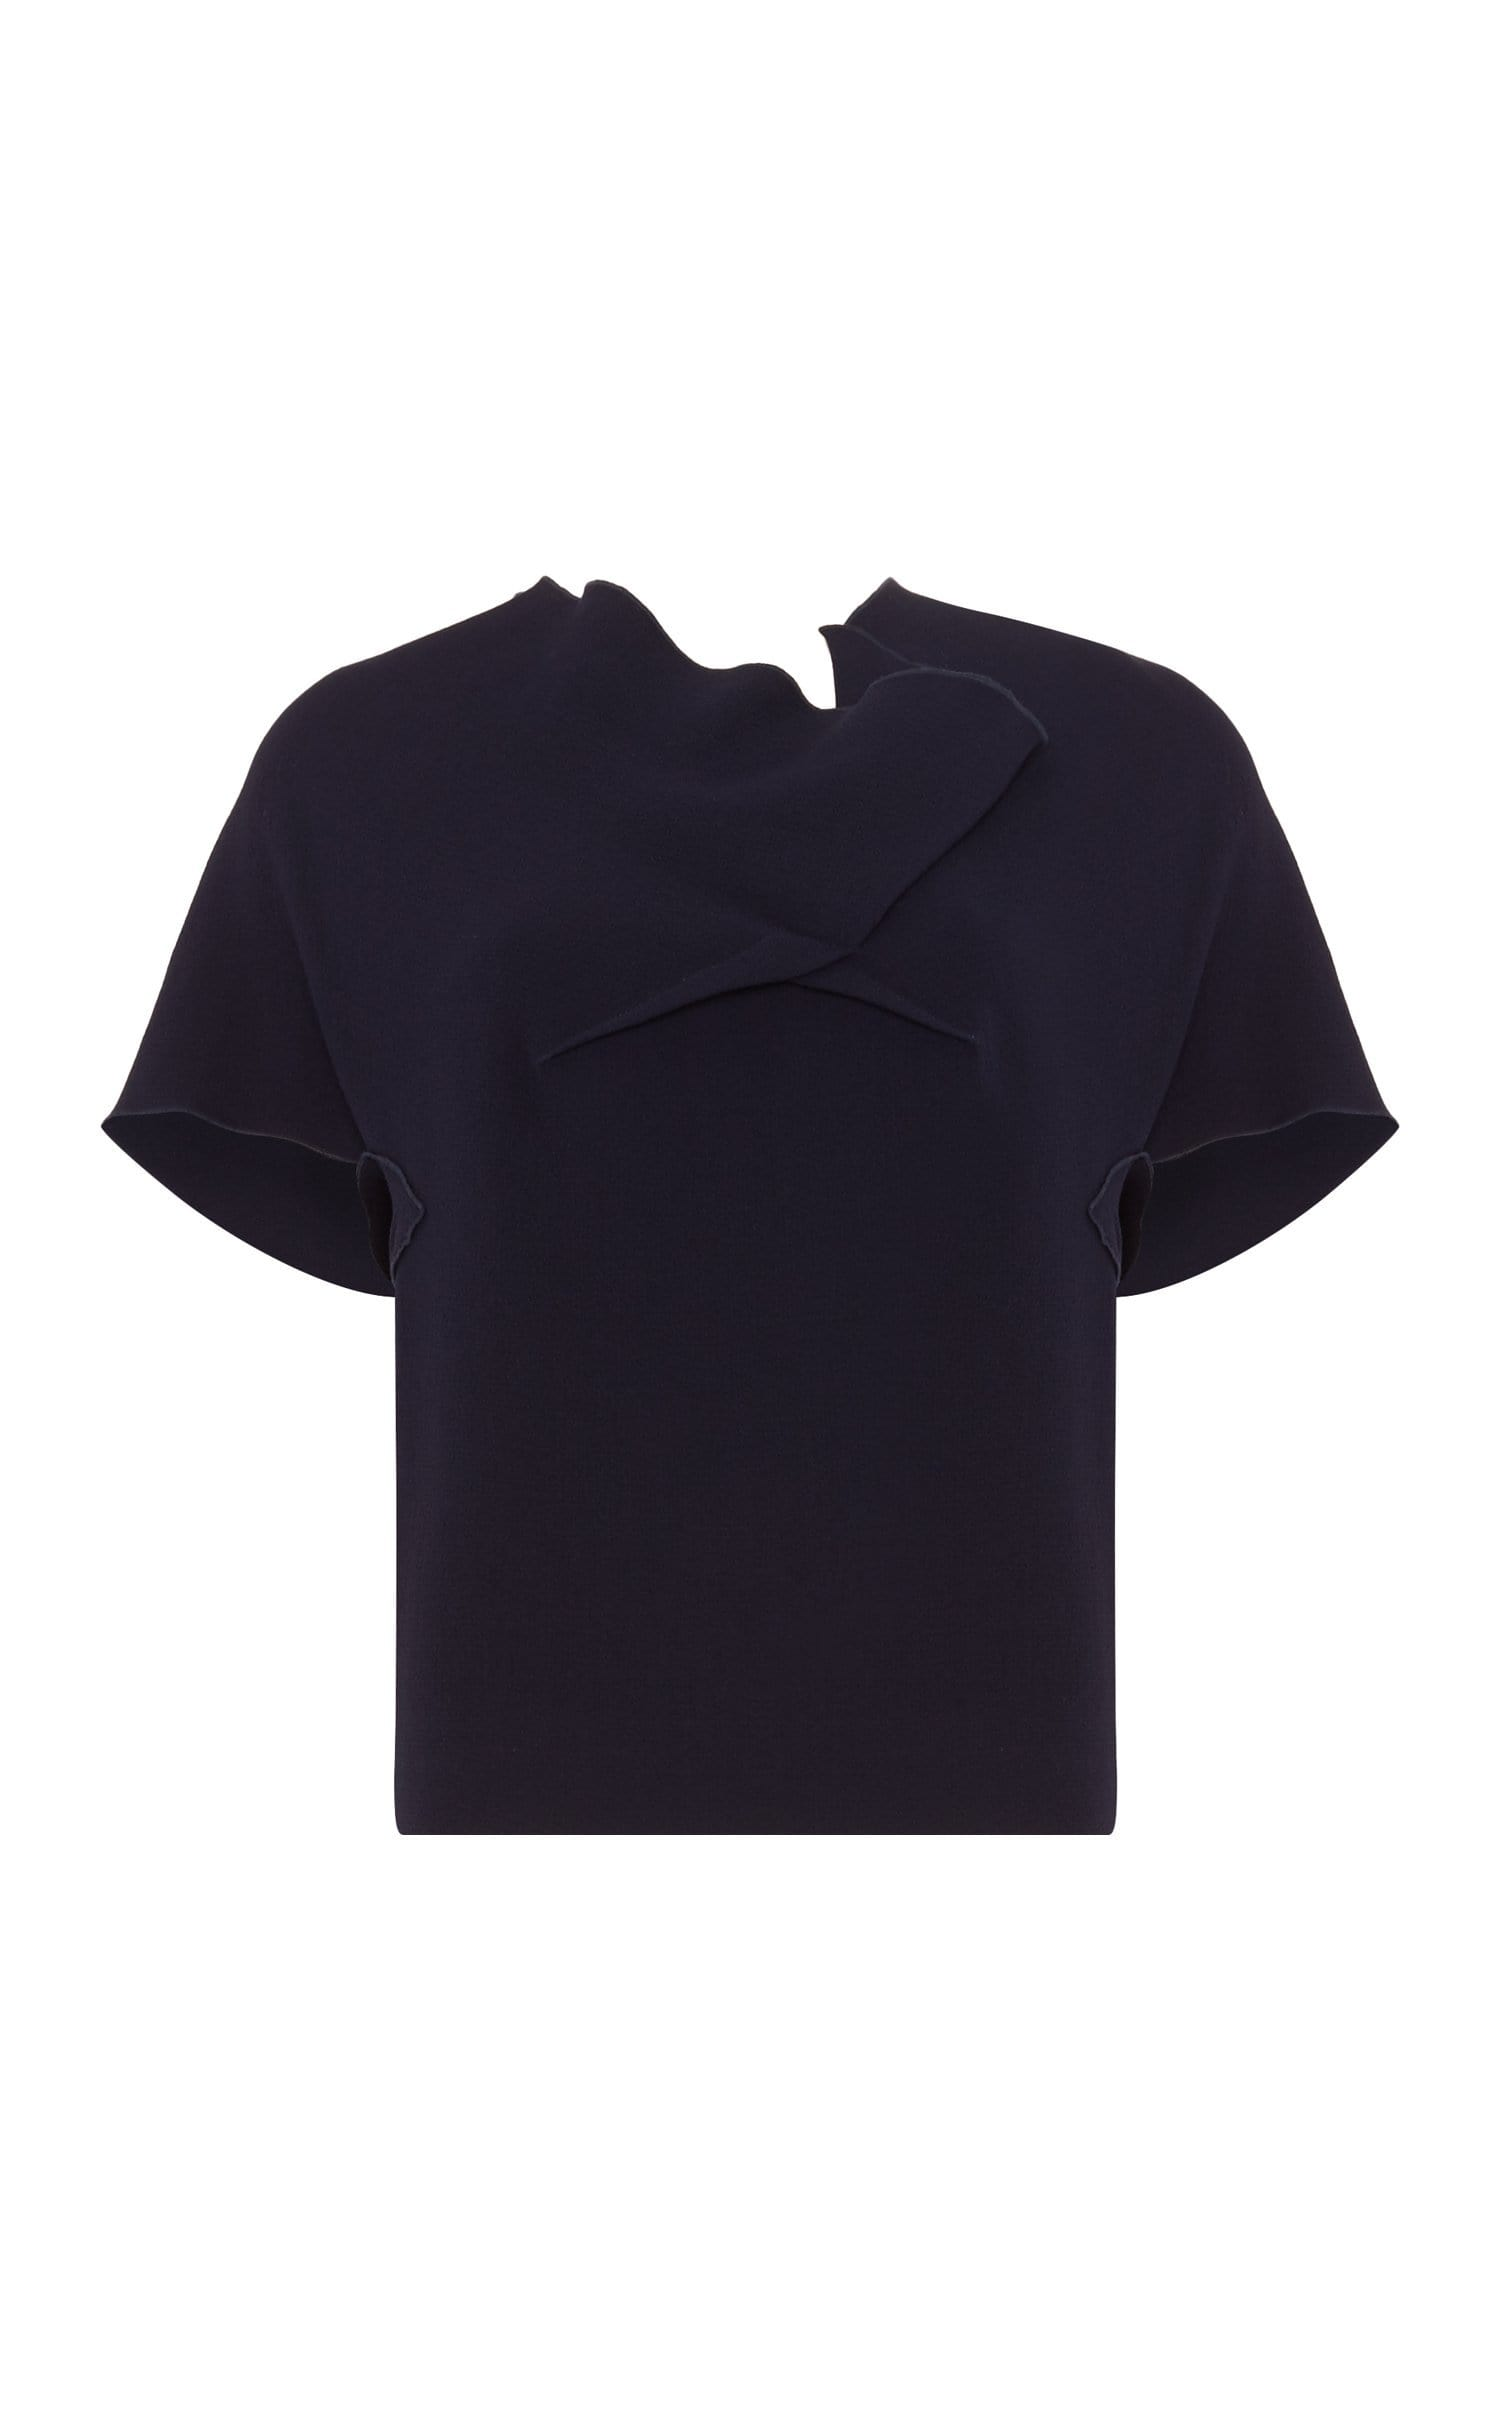 Lindsay Top In Navy from Roland Mouret